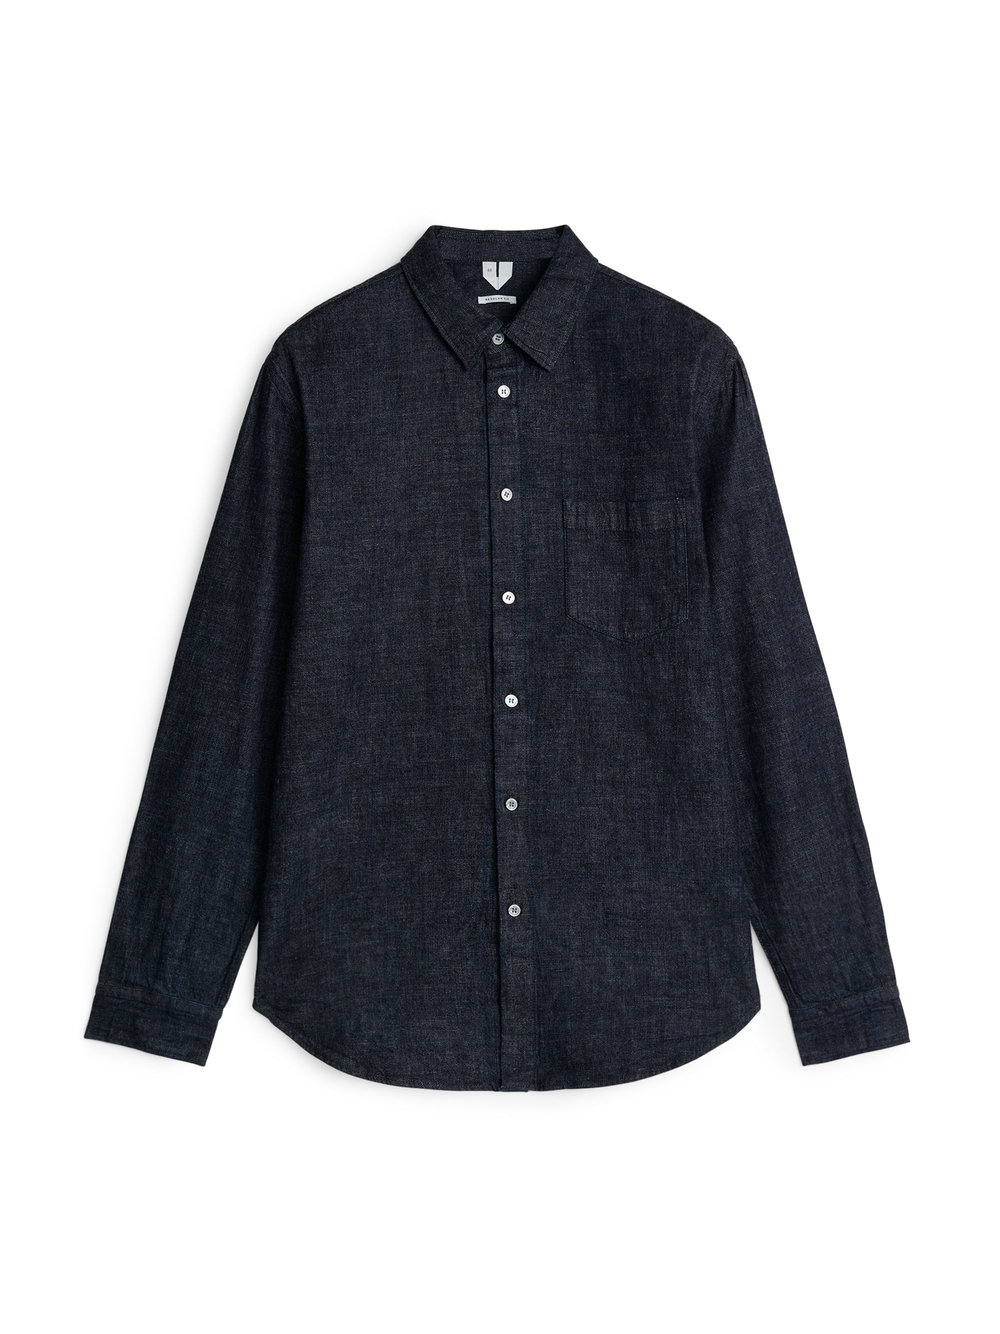 Denim Shirt, Arket, £79